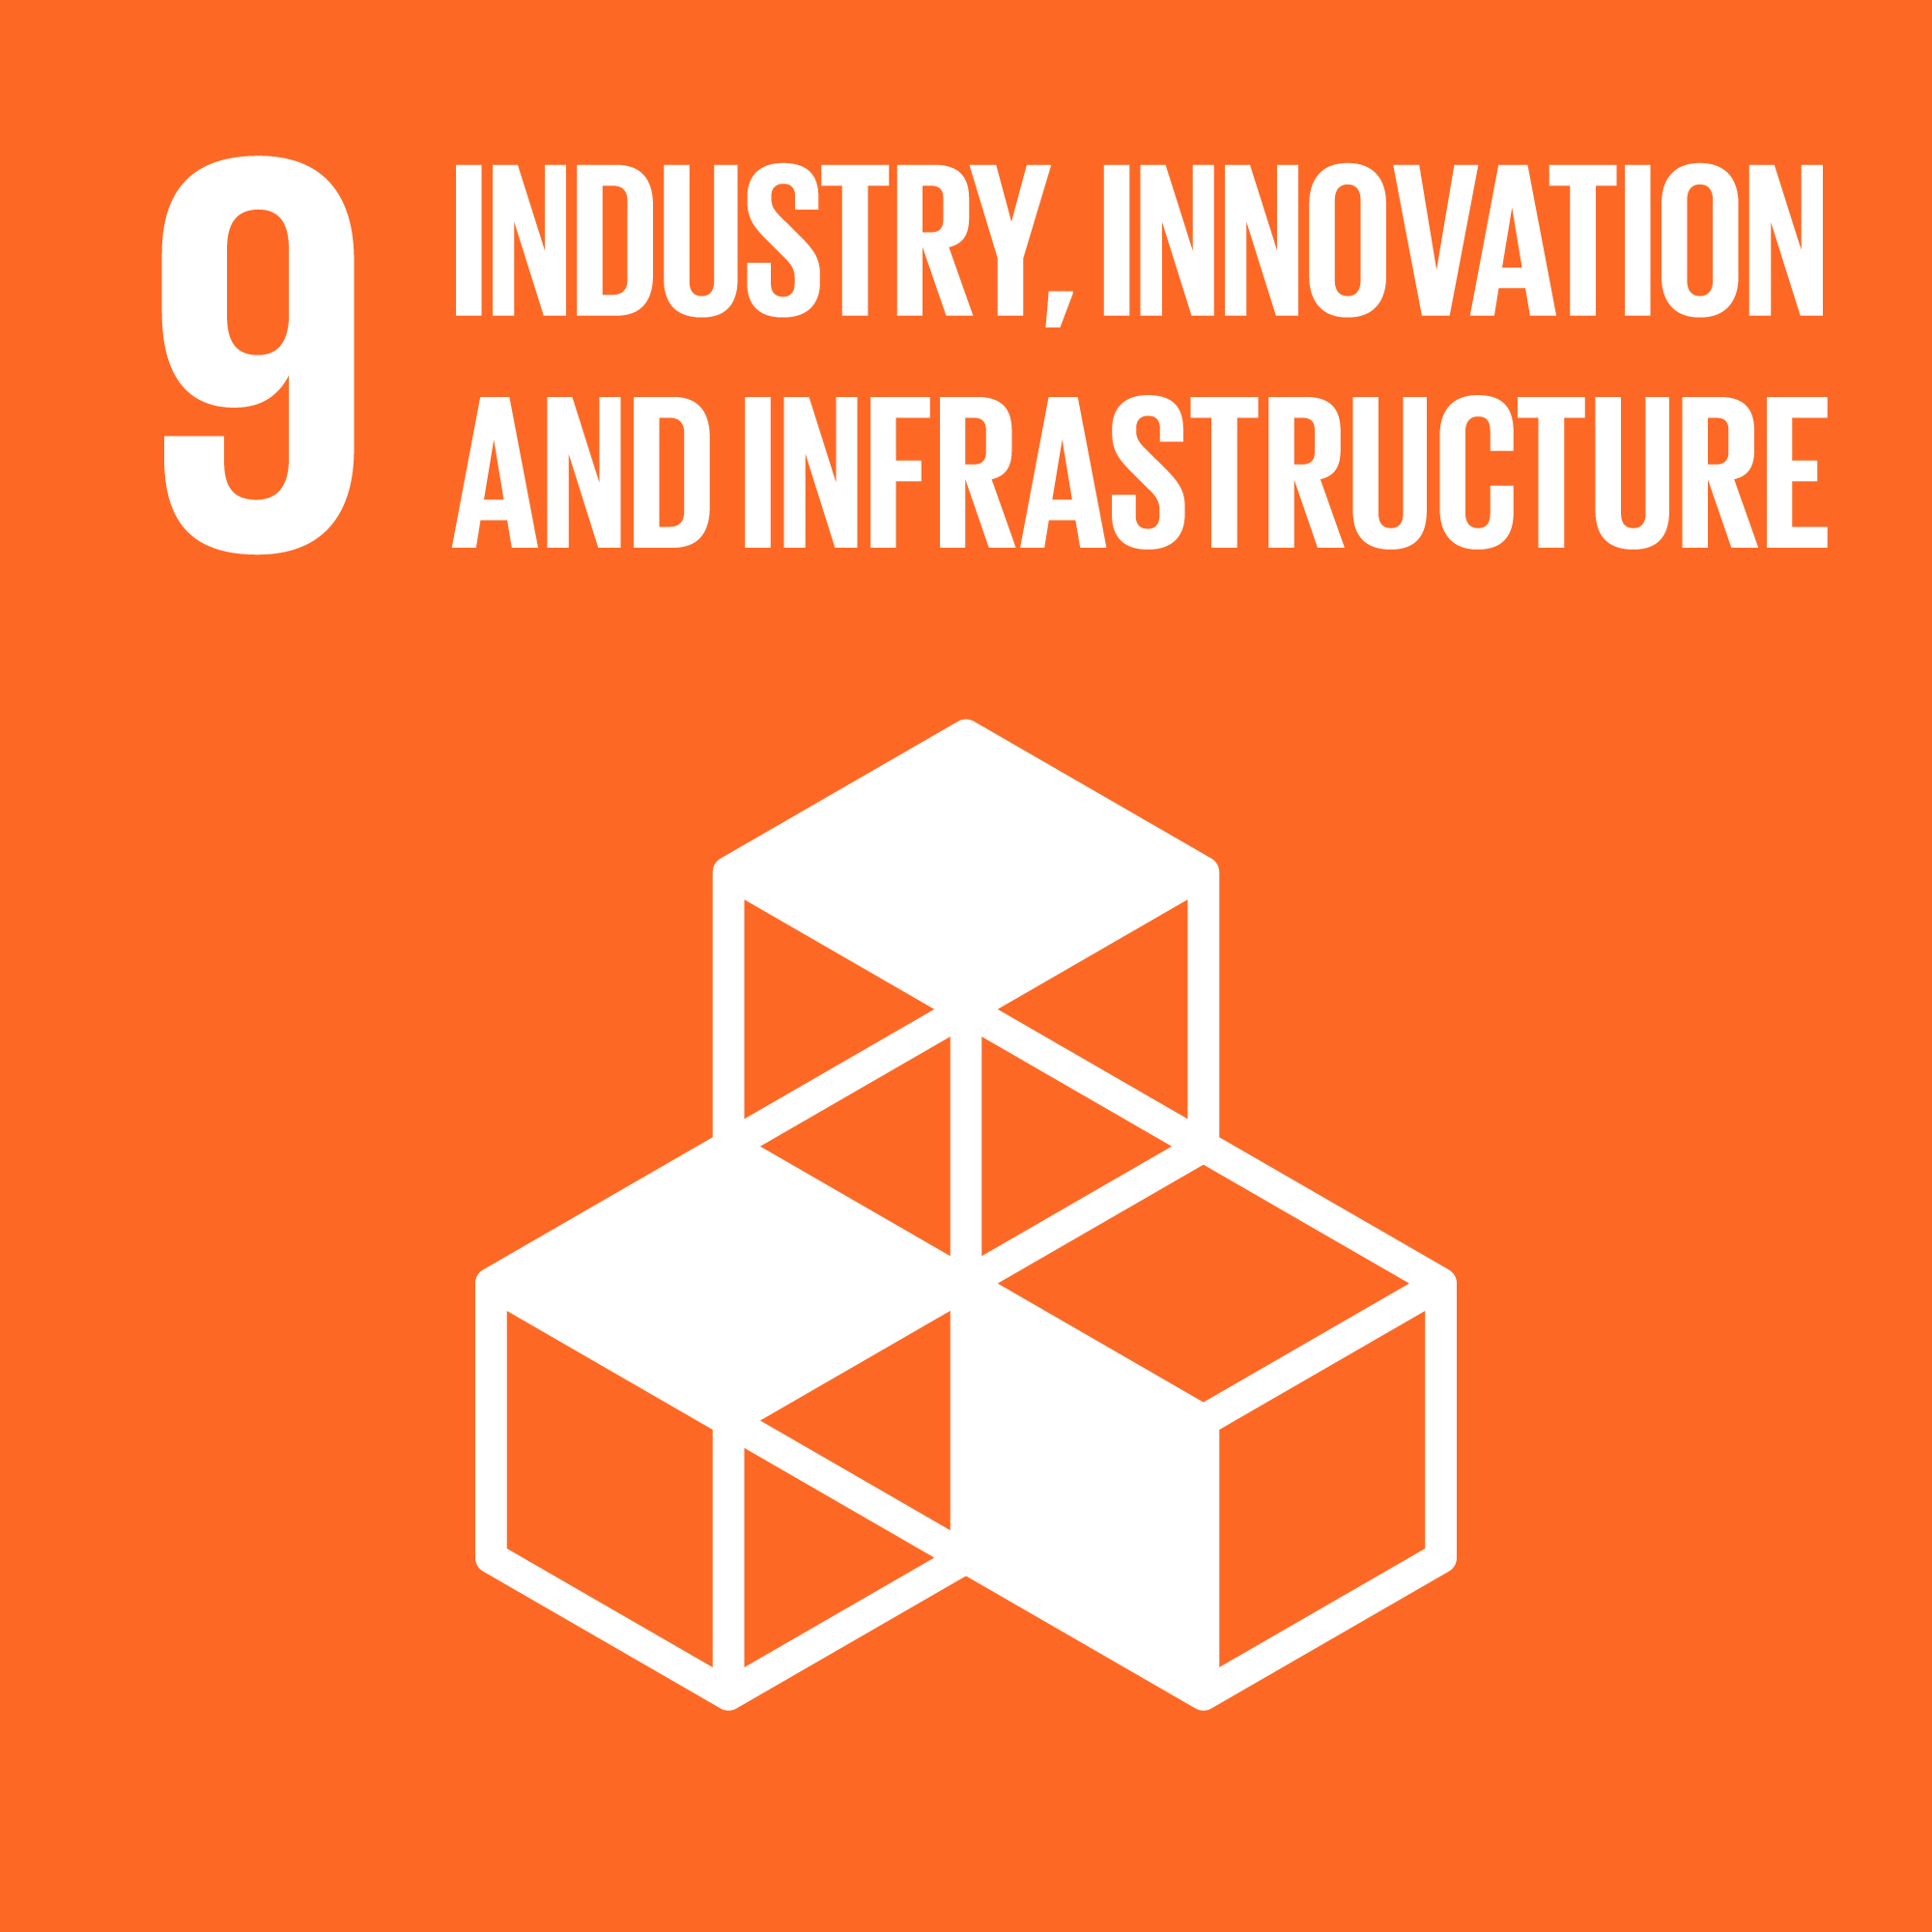 UNSDG 9 Industry Innovation Infrastructure